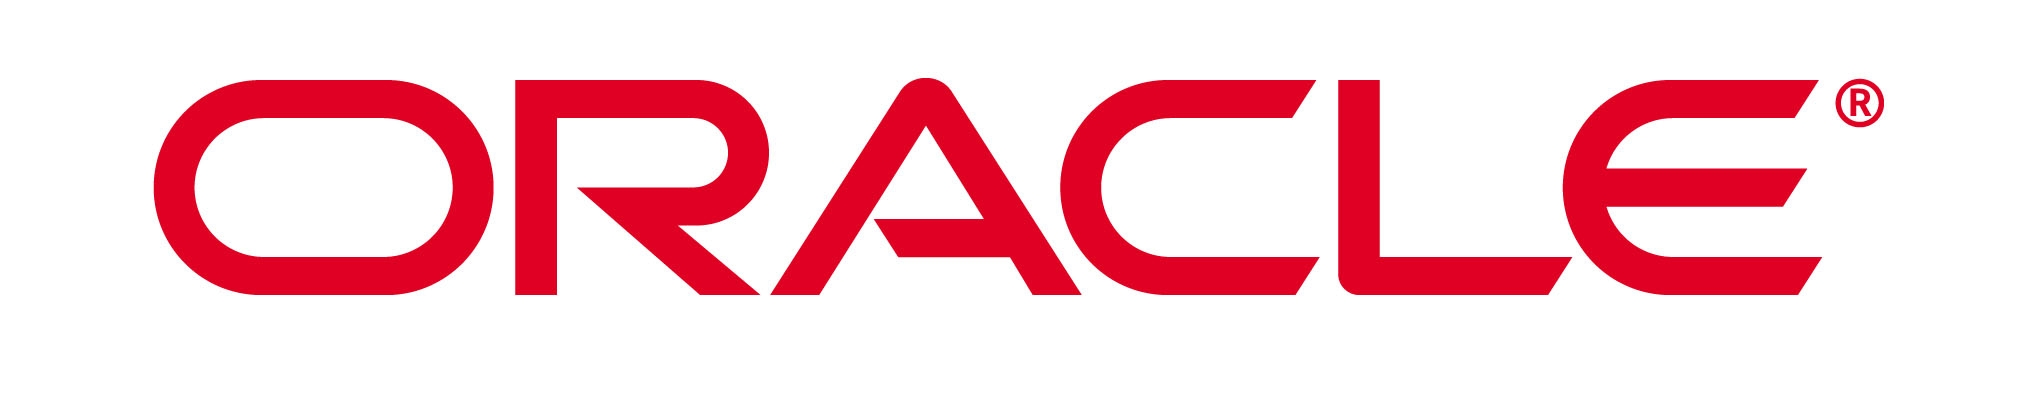 logo-oracle-large